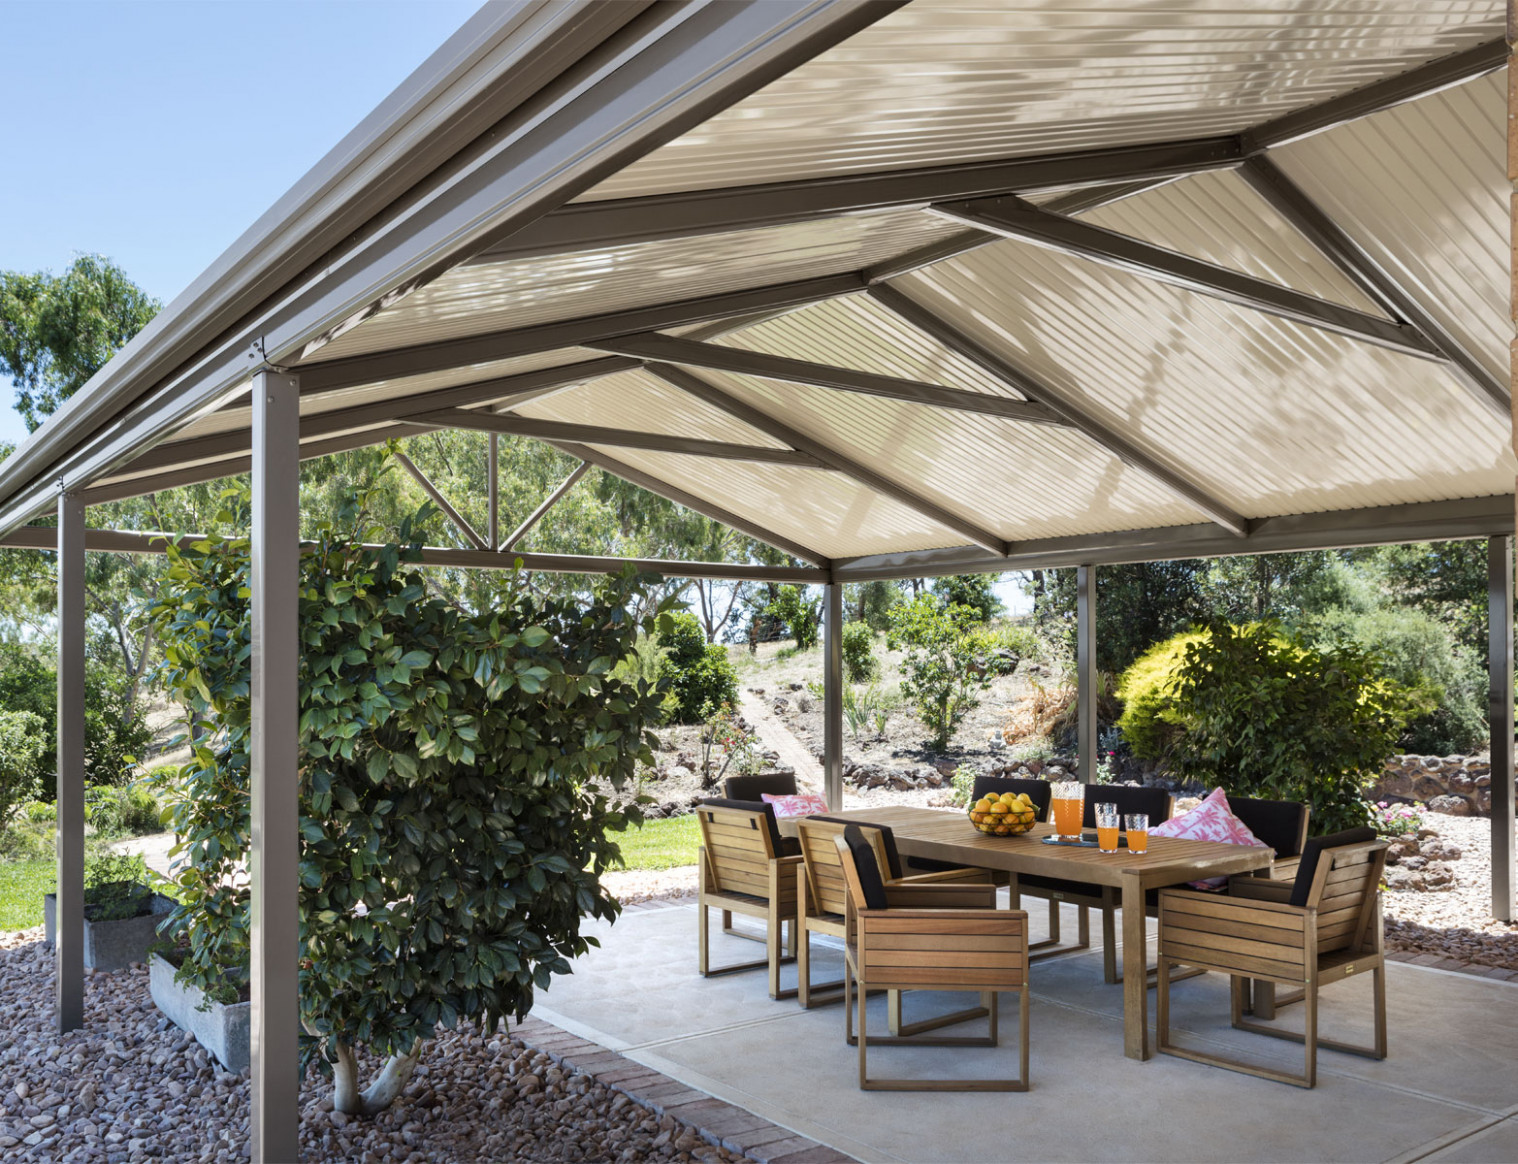 Outback® Gable | Stratco Gable Roof Carports Brisbane